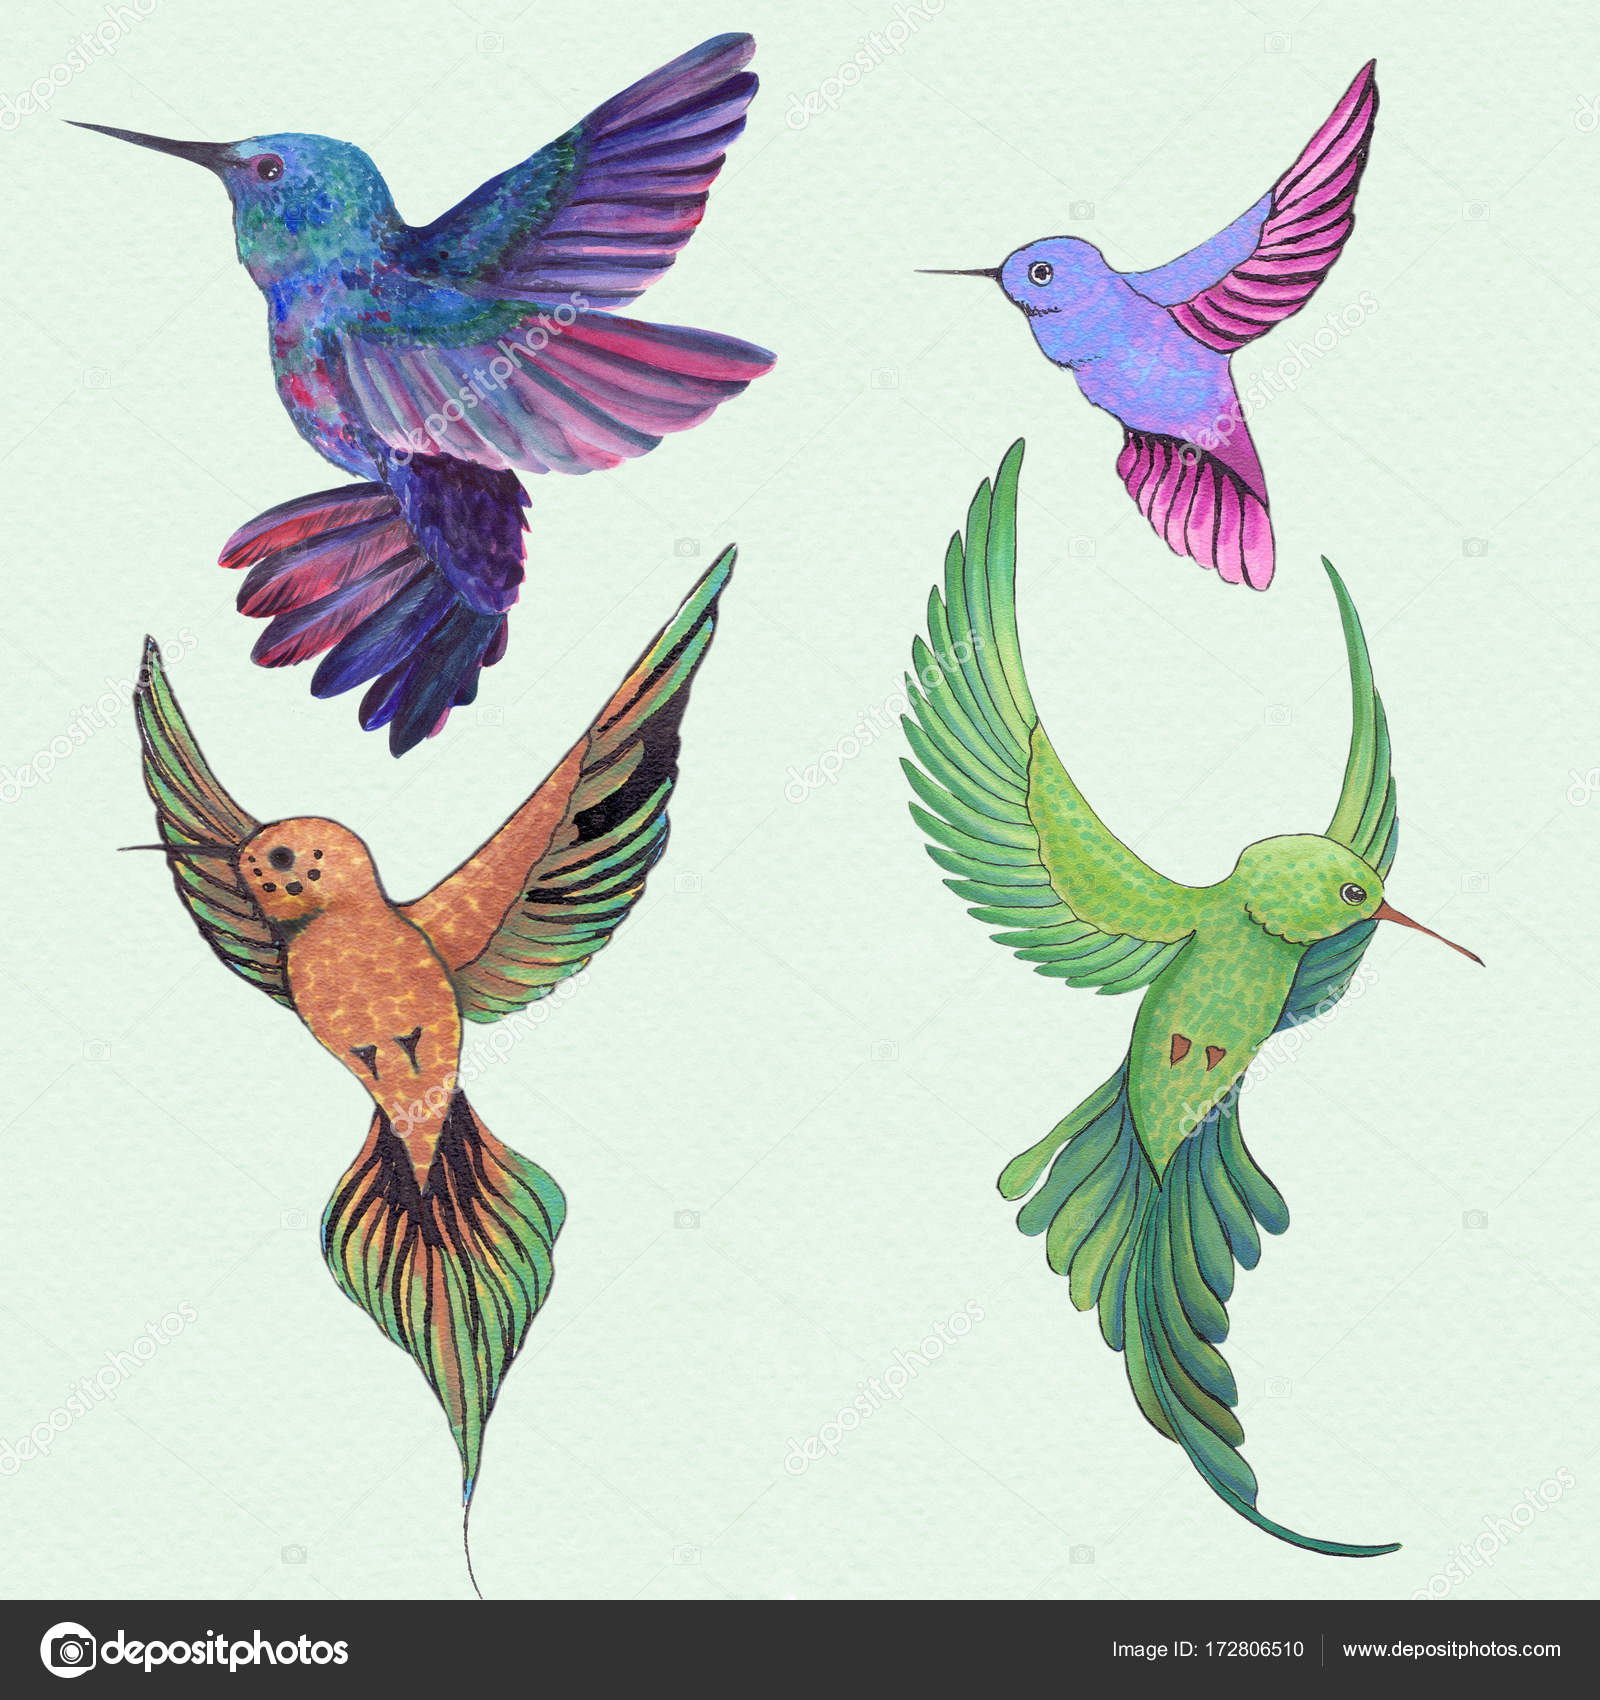 Birds Of Hummingbirds Drawing With Watercolor Wallpaper Isolated